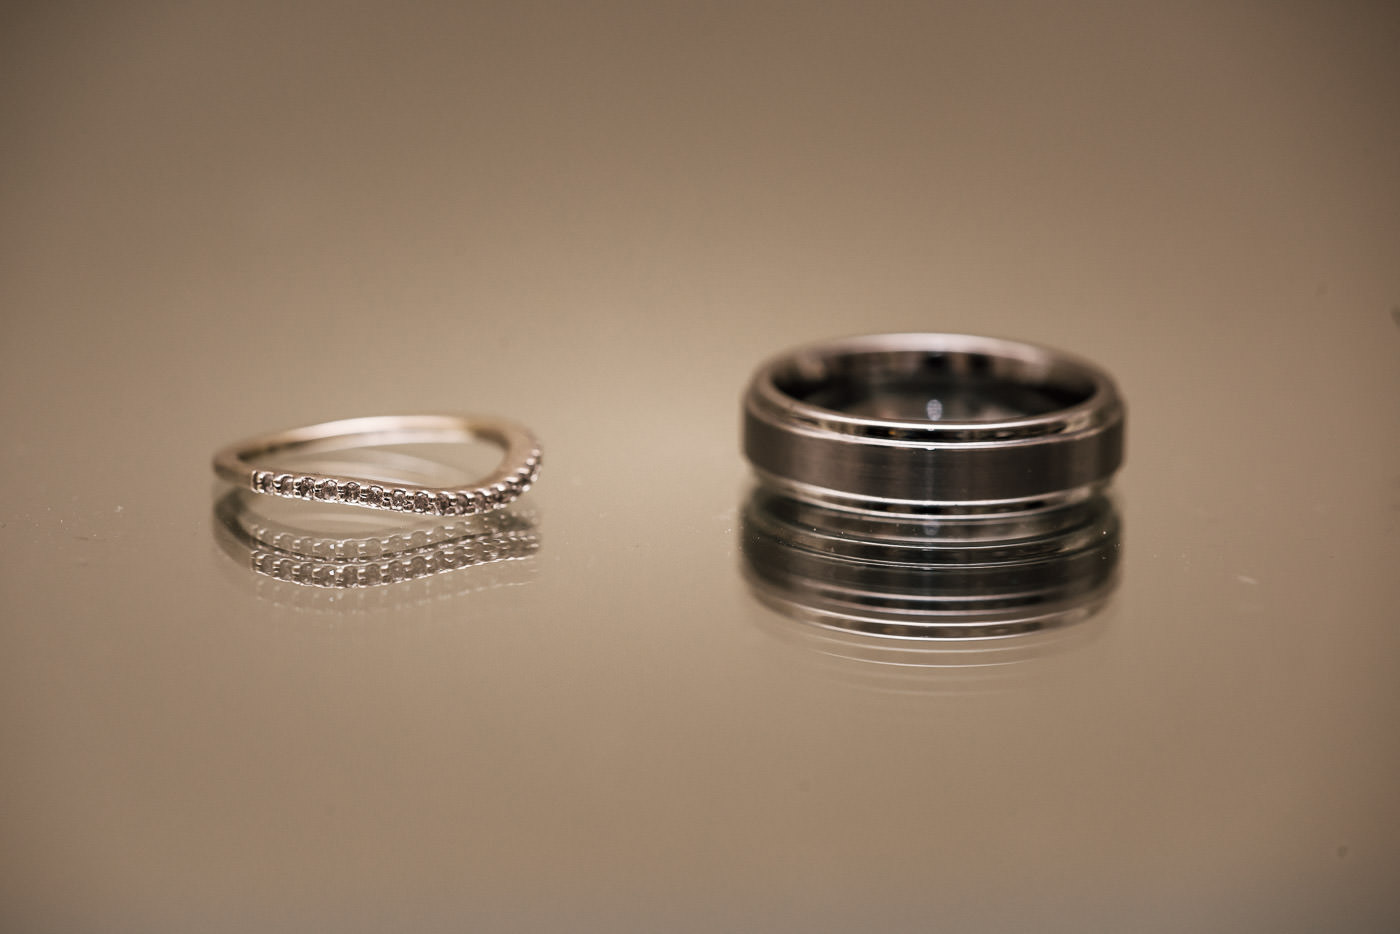 Couples wedding rings reflected n a mirror.